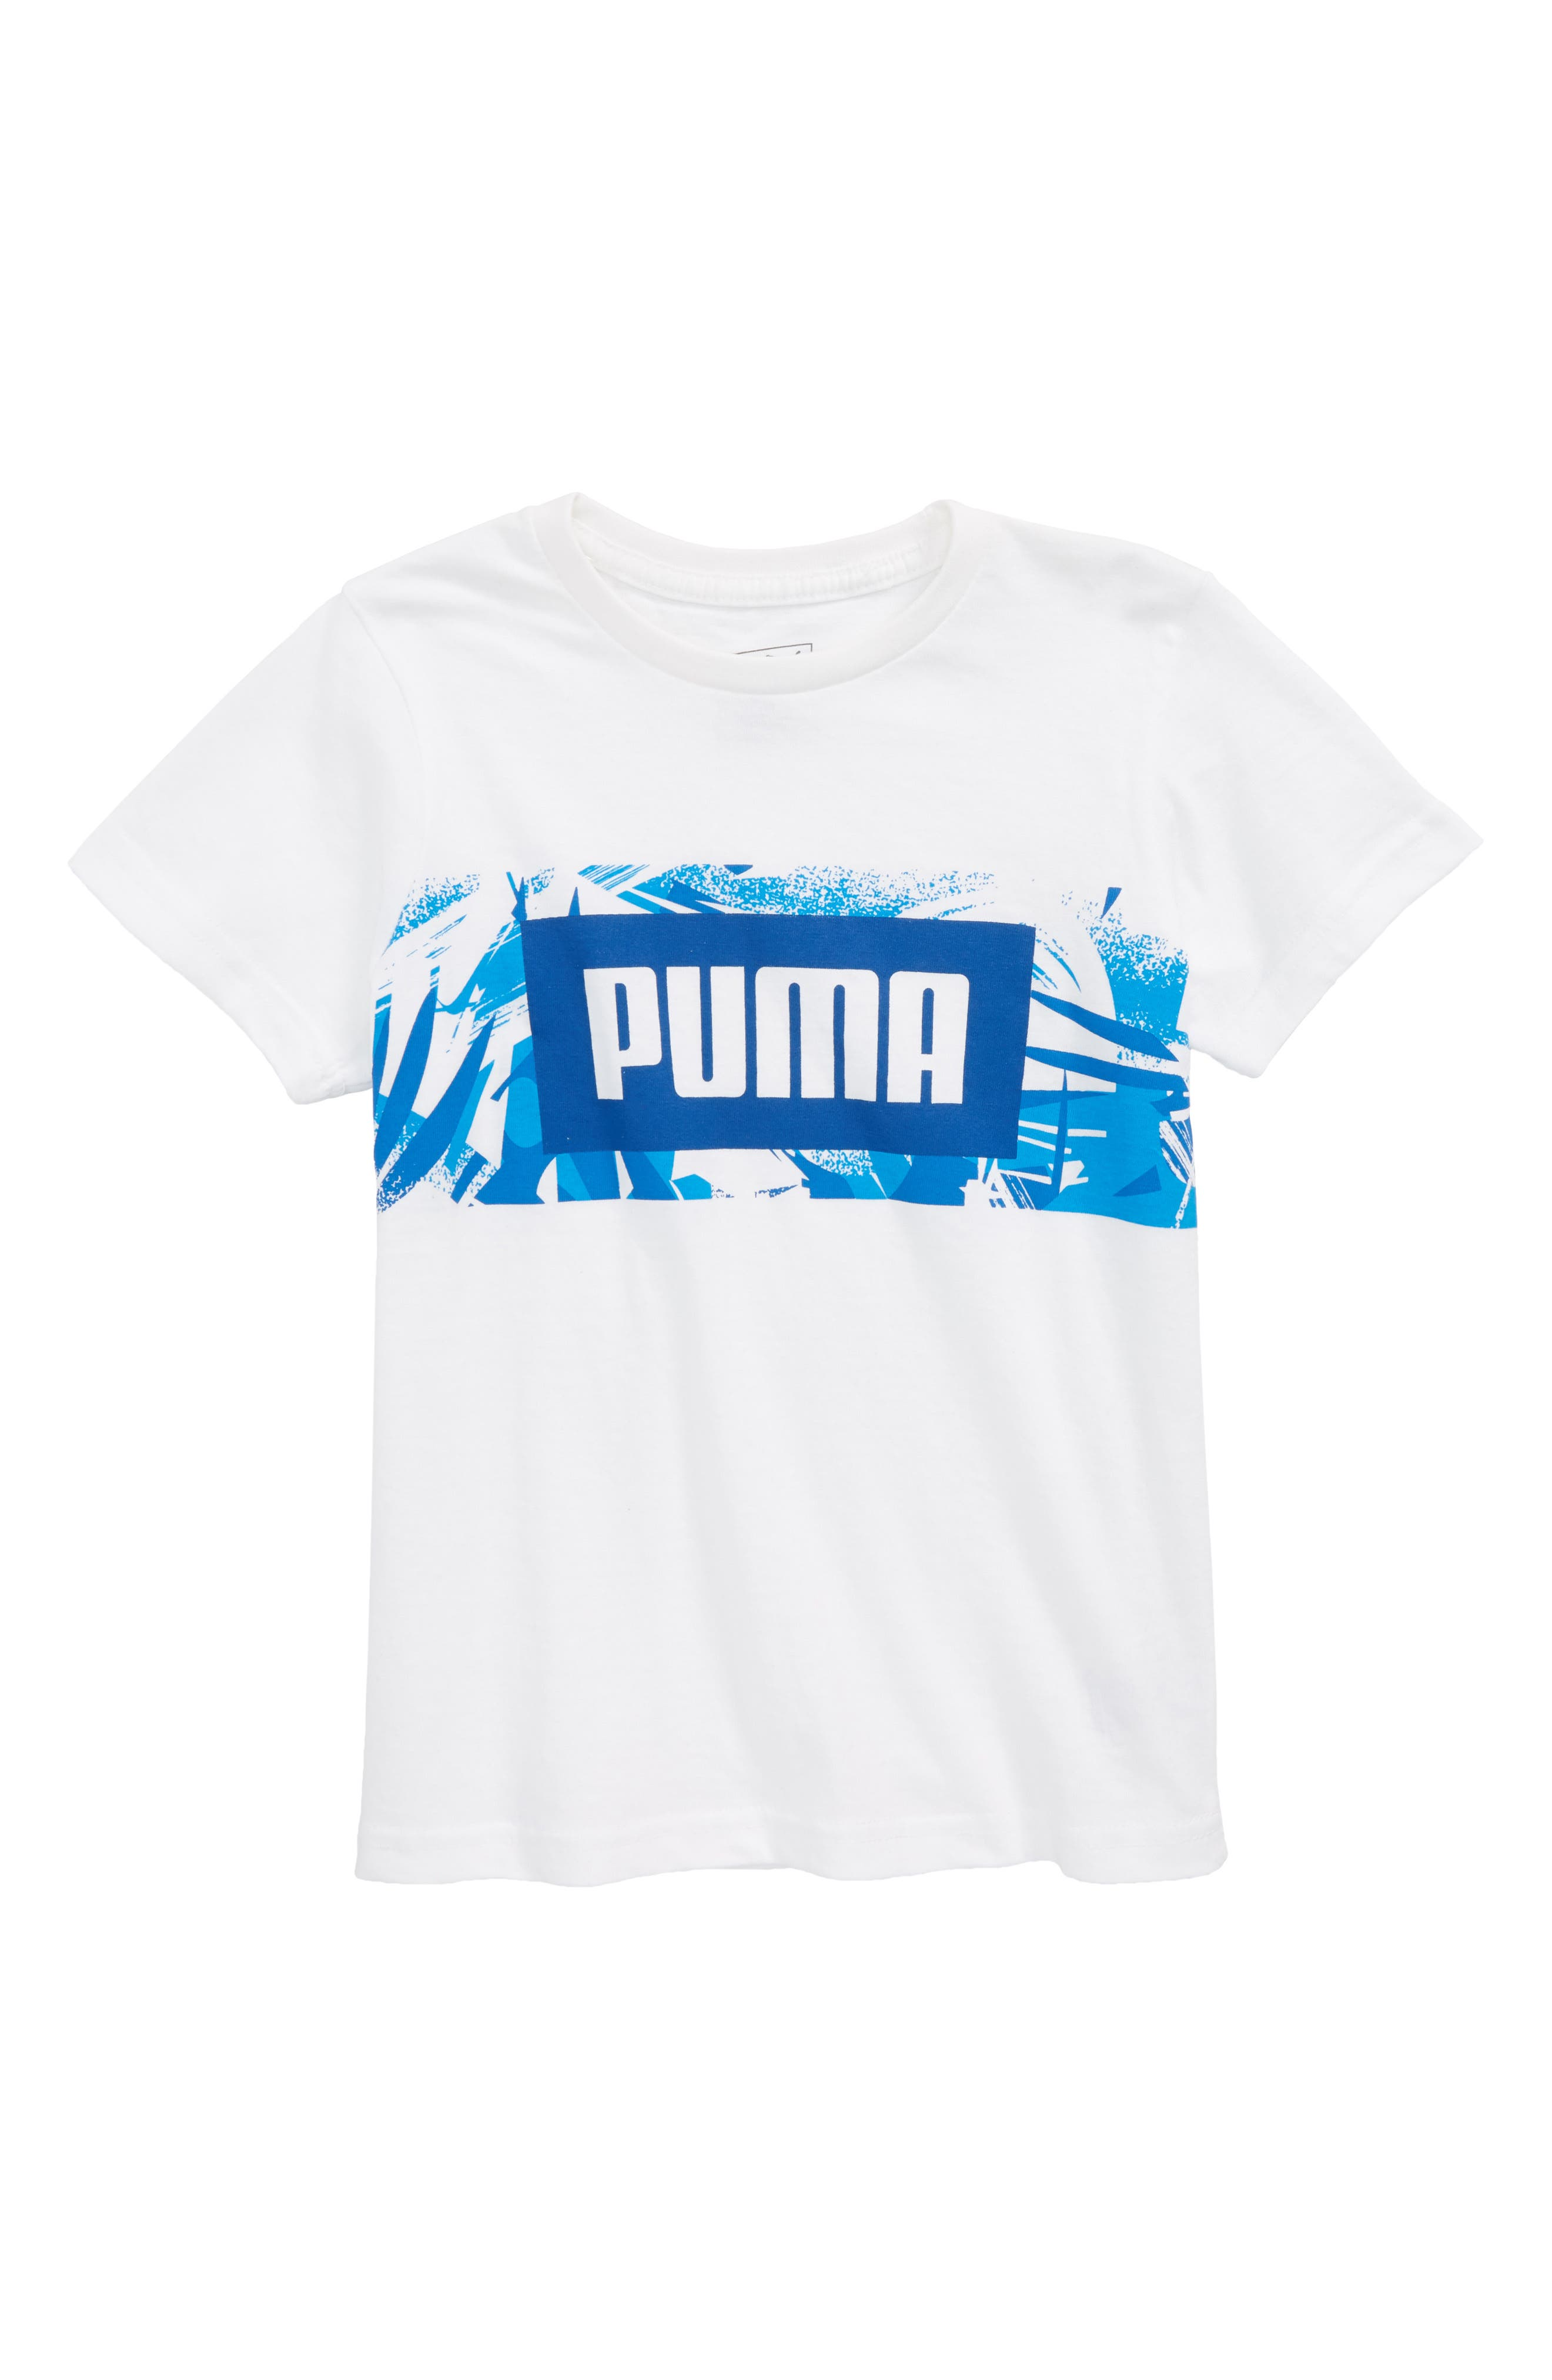 Alternate Image 1 Selected - PUMA Graphic T-Shirt (Big Boys)